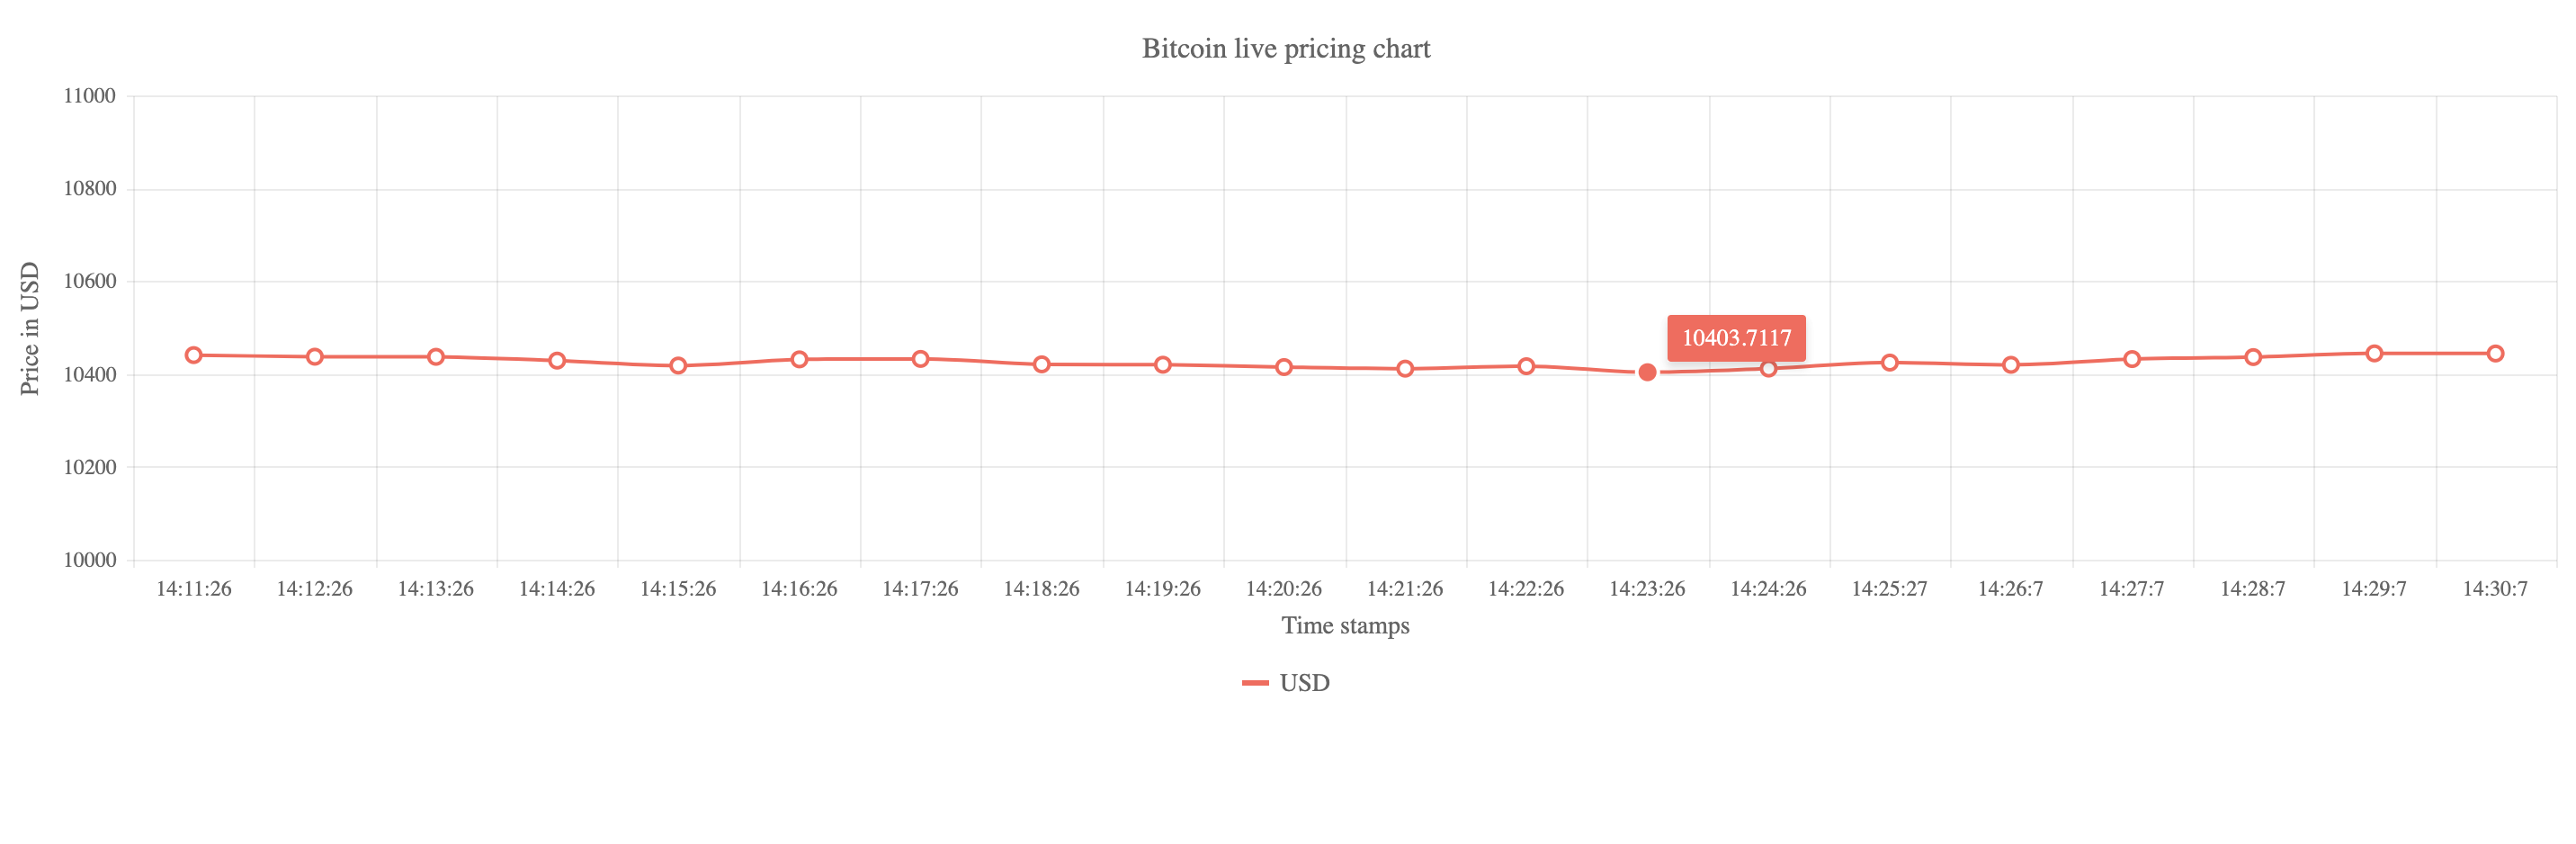 Tutorial / Building a live bitcoin pricing chart in Angular